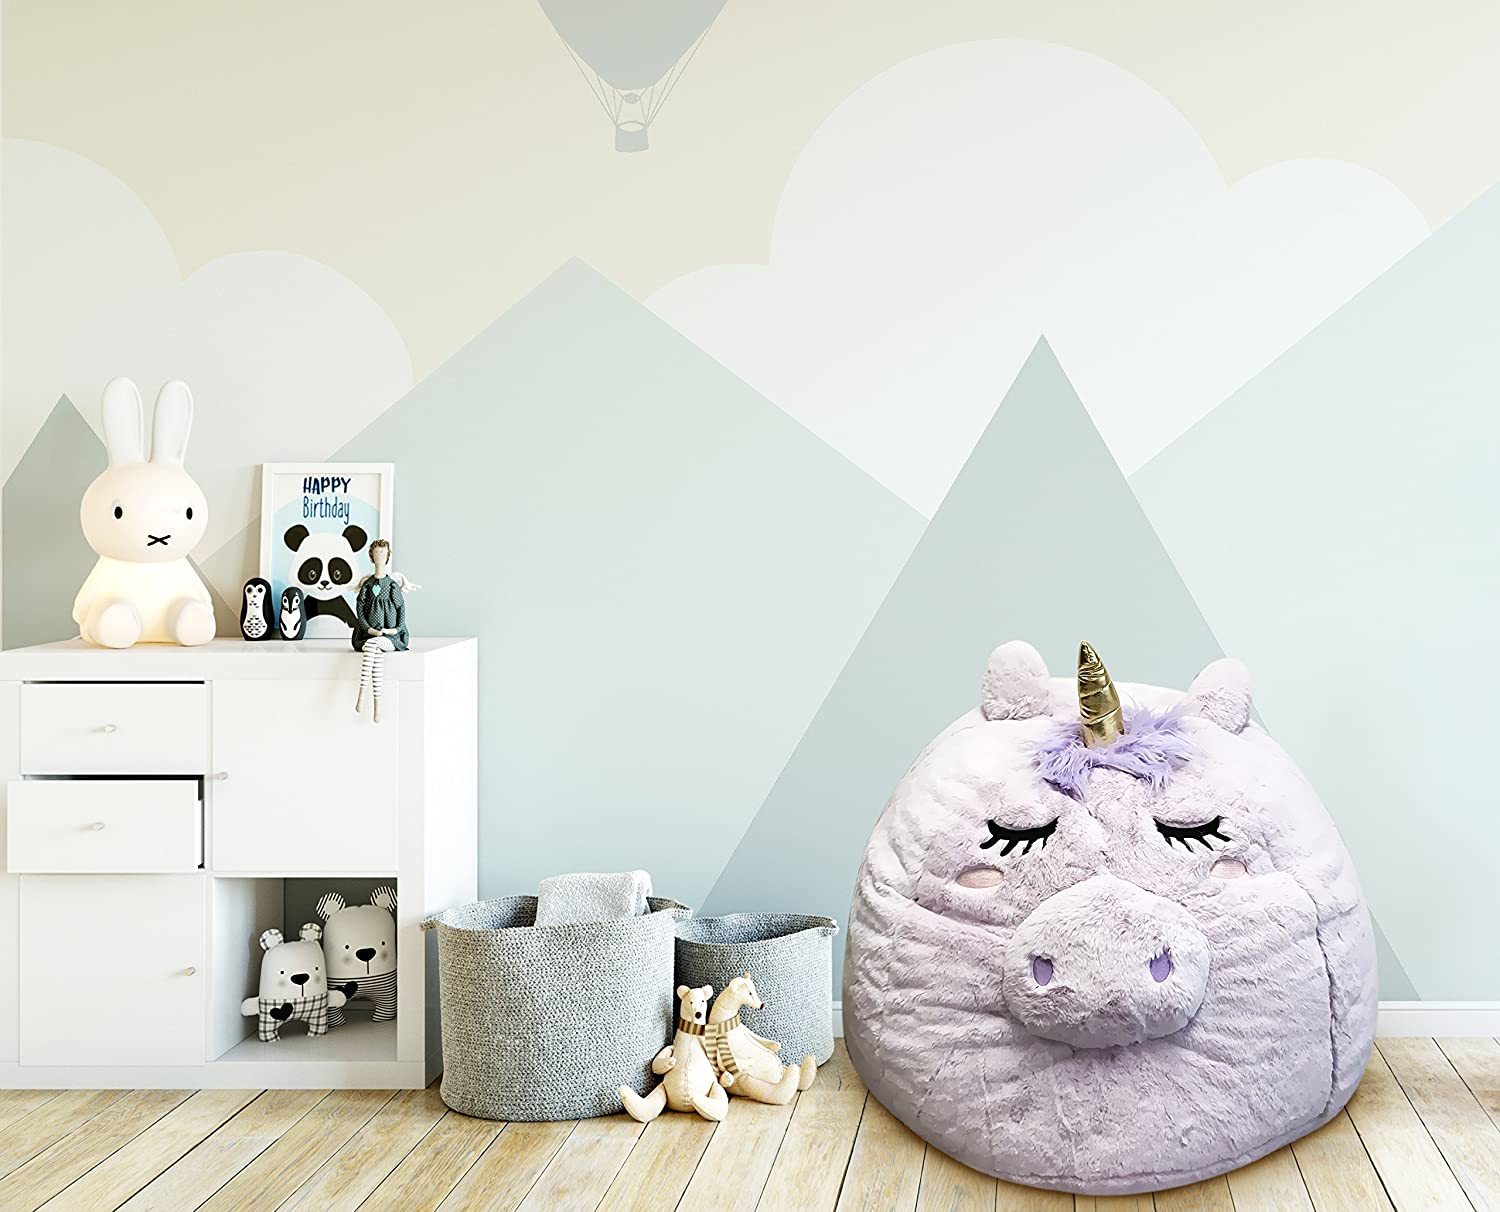 Beanbag For Kids Soft And Comfortable Stuffed Bean Bag Chair For The Nursery, Cute Animal Design For Boys And Girls, Lux Plush Fabric, For Children Of All Ages 30 x 30 x 20 Unicorn